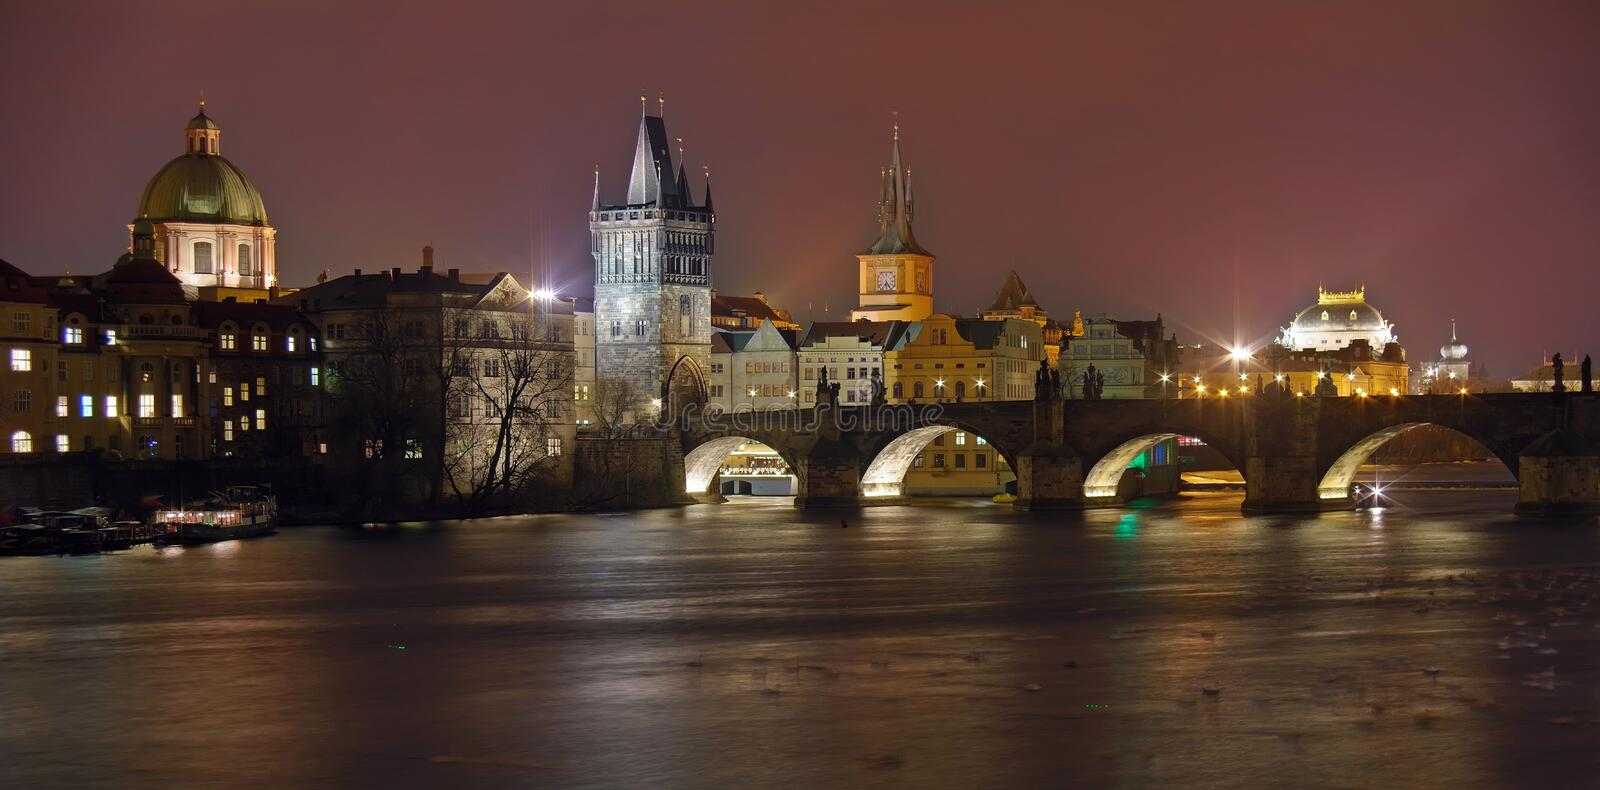 Attraction de point de repère à Prague : Charles Bridge, château de Prague, saint catholique Vitus Cathedral et rivière de Vltava photo libre de droits